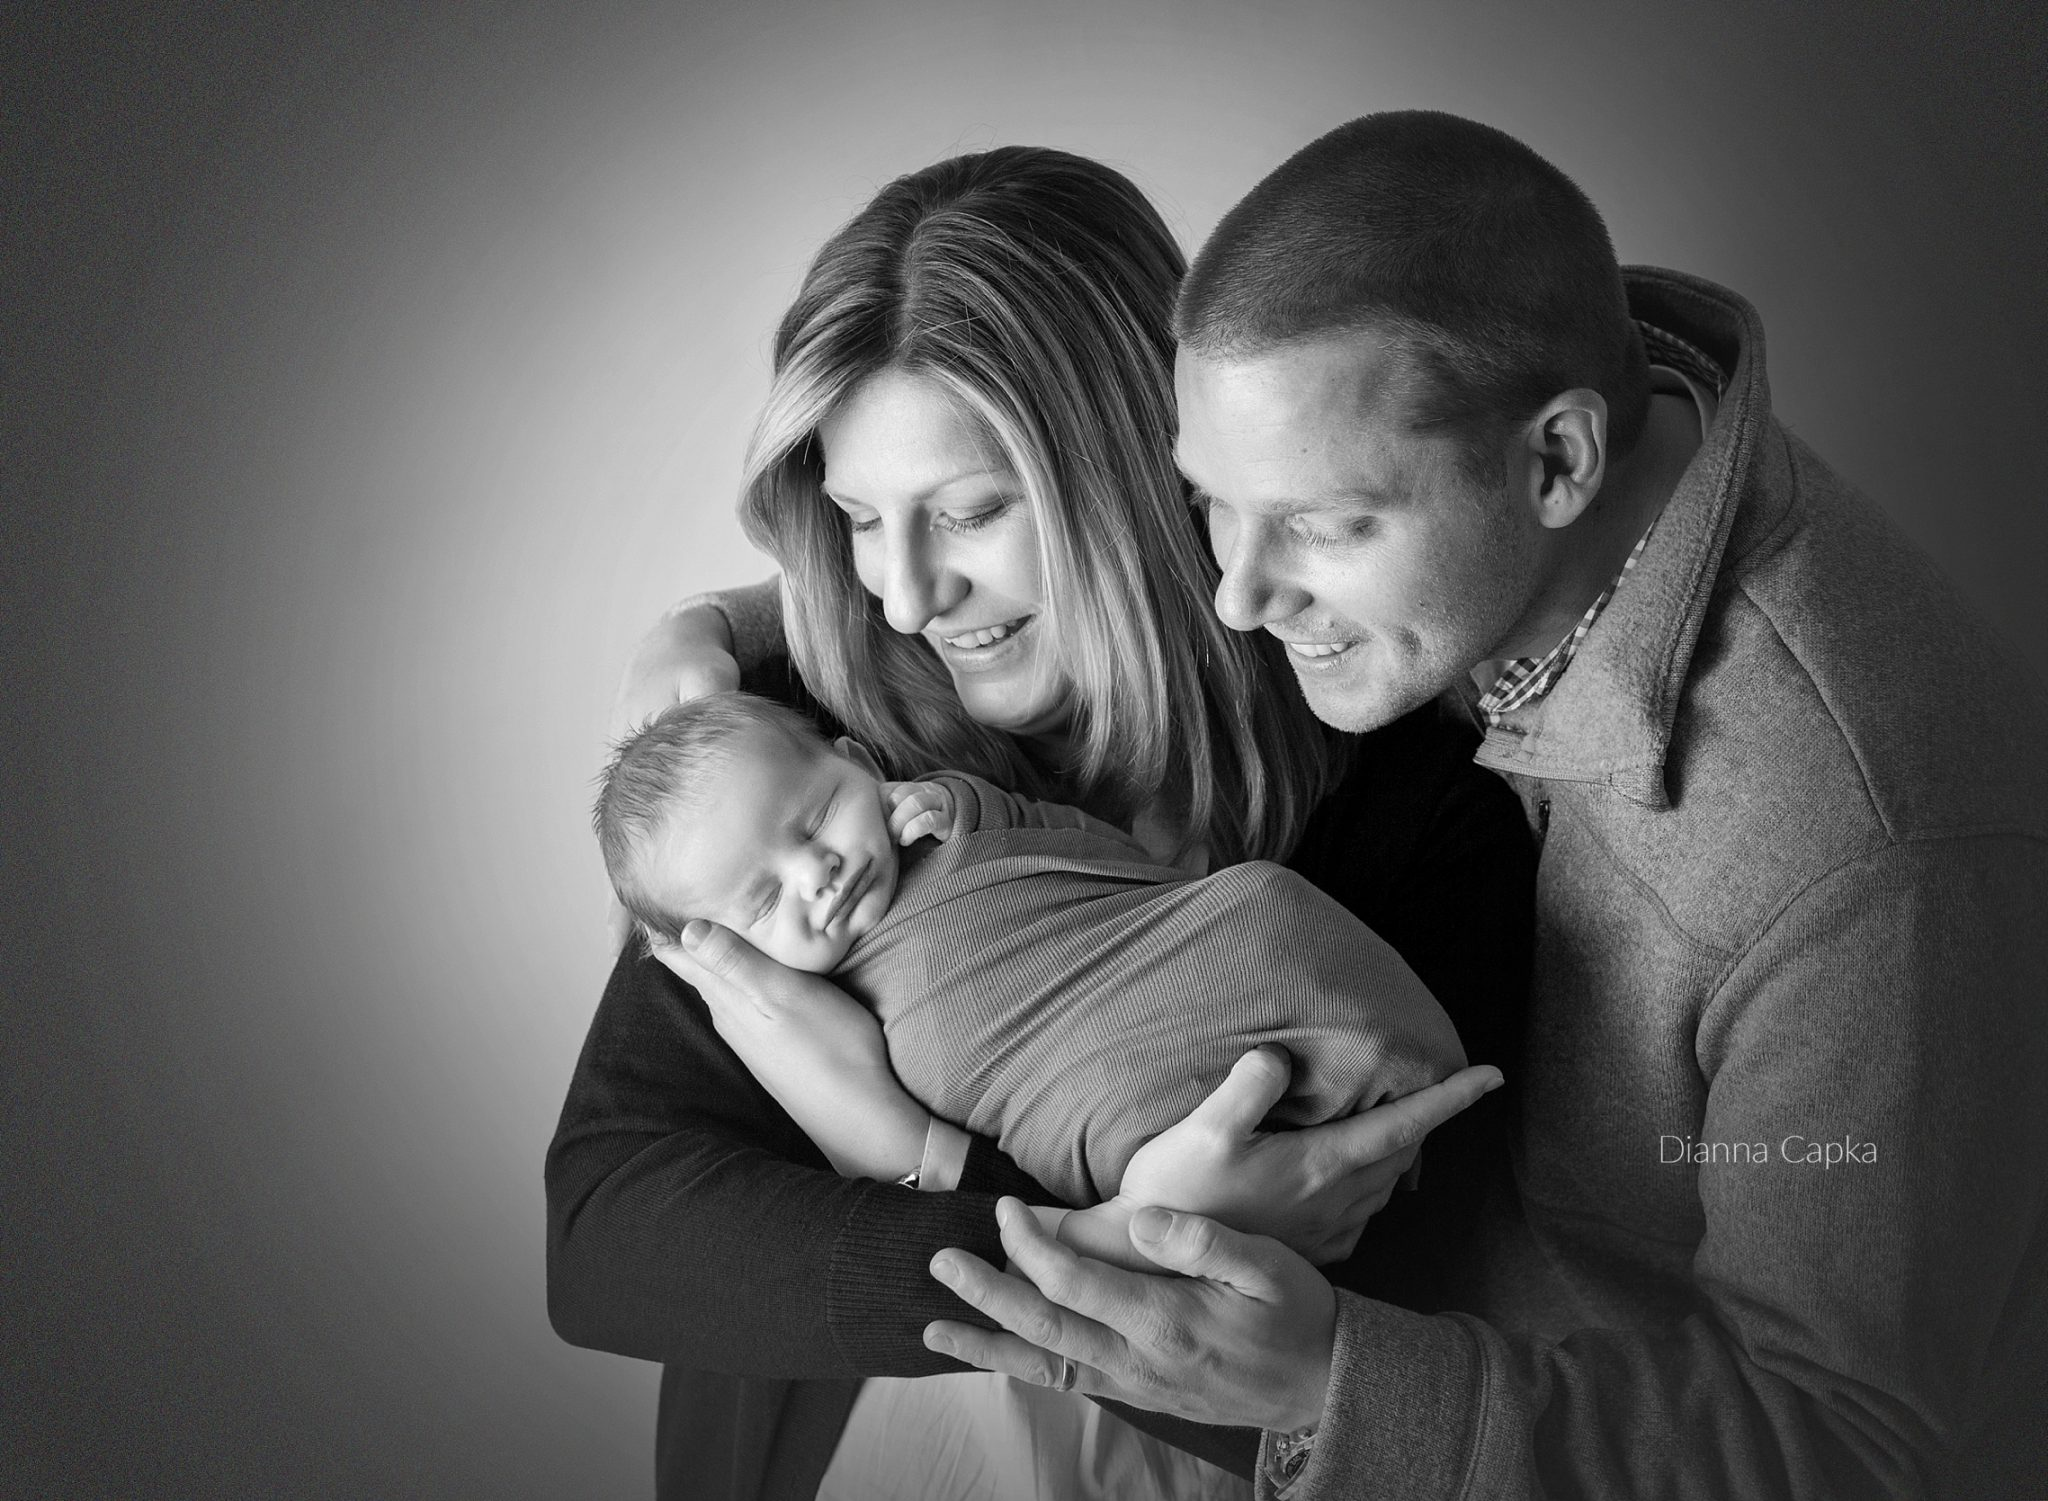 Parents with newborn studio portrait photography